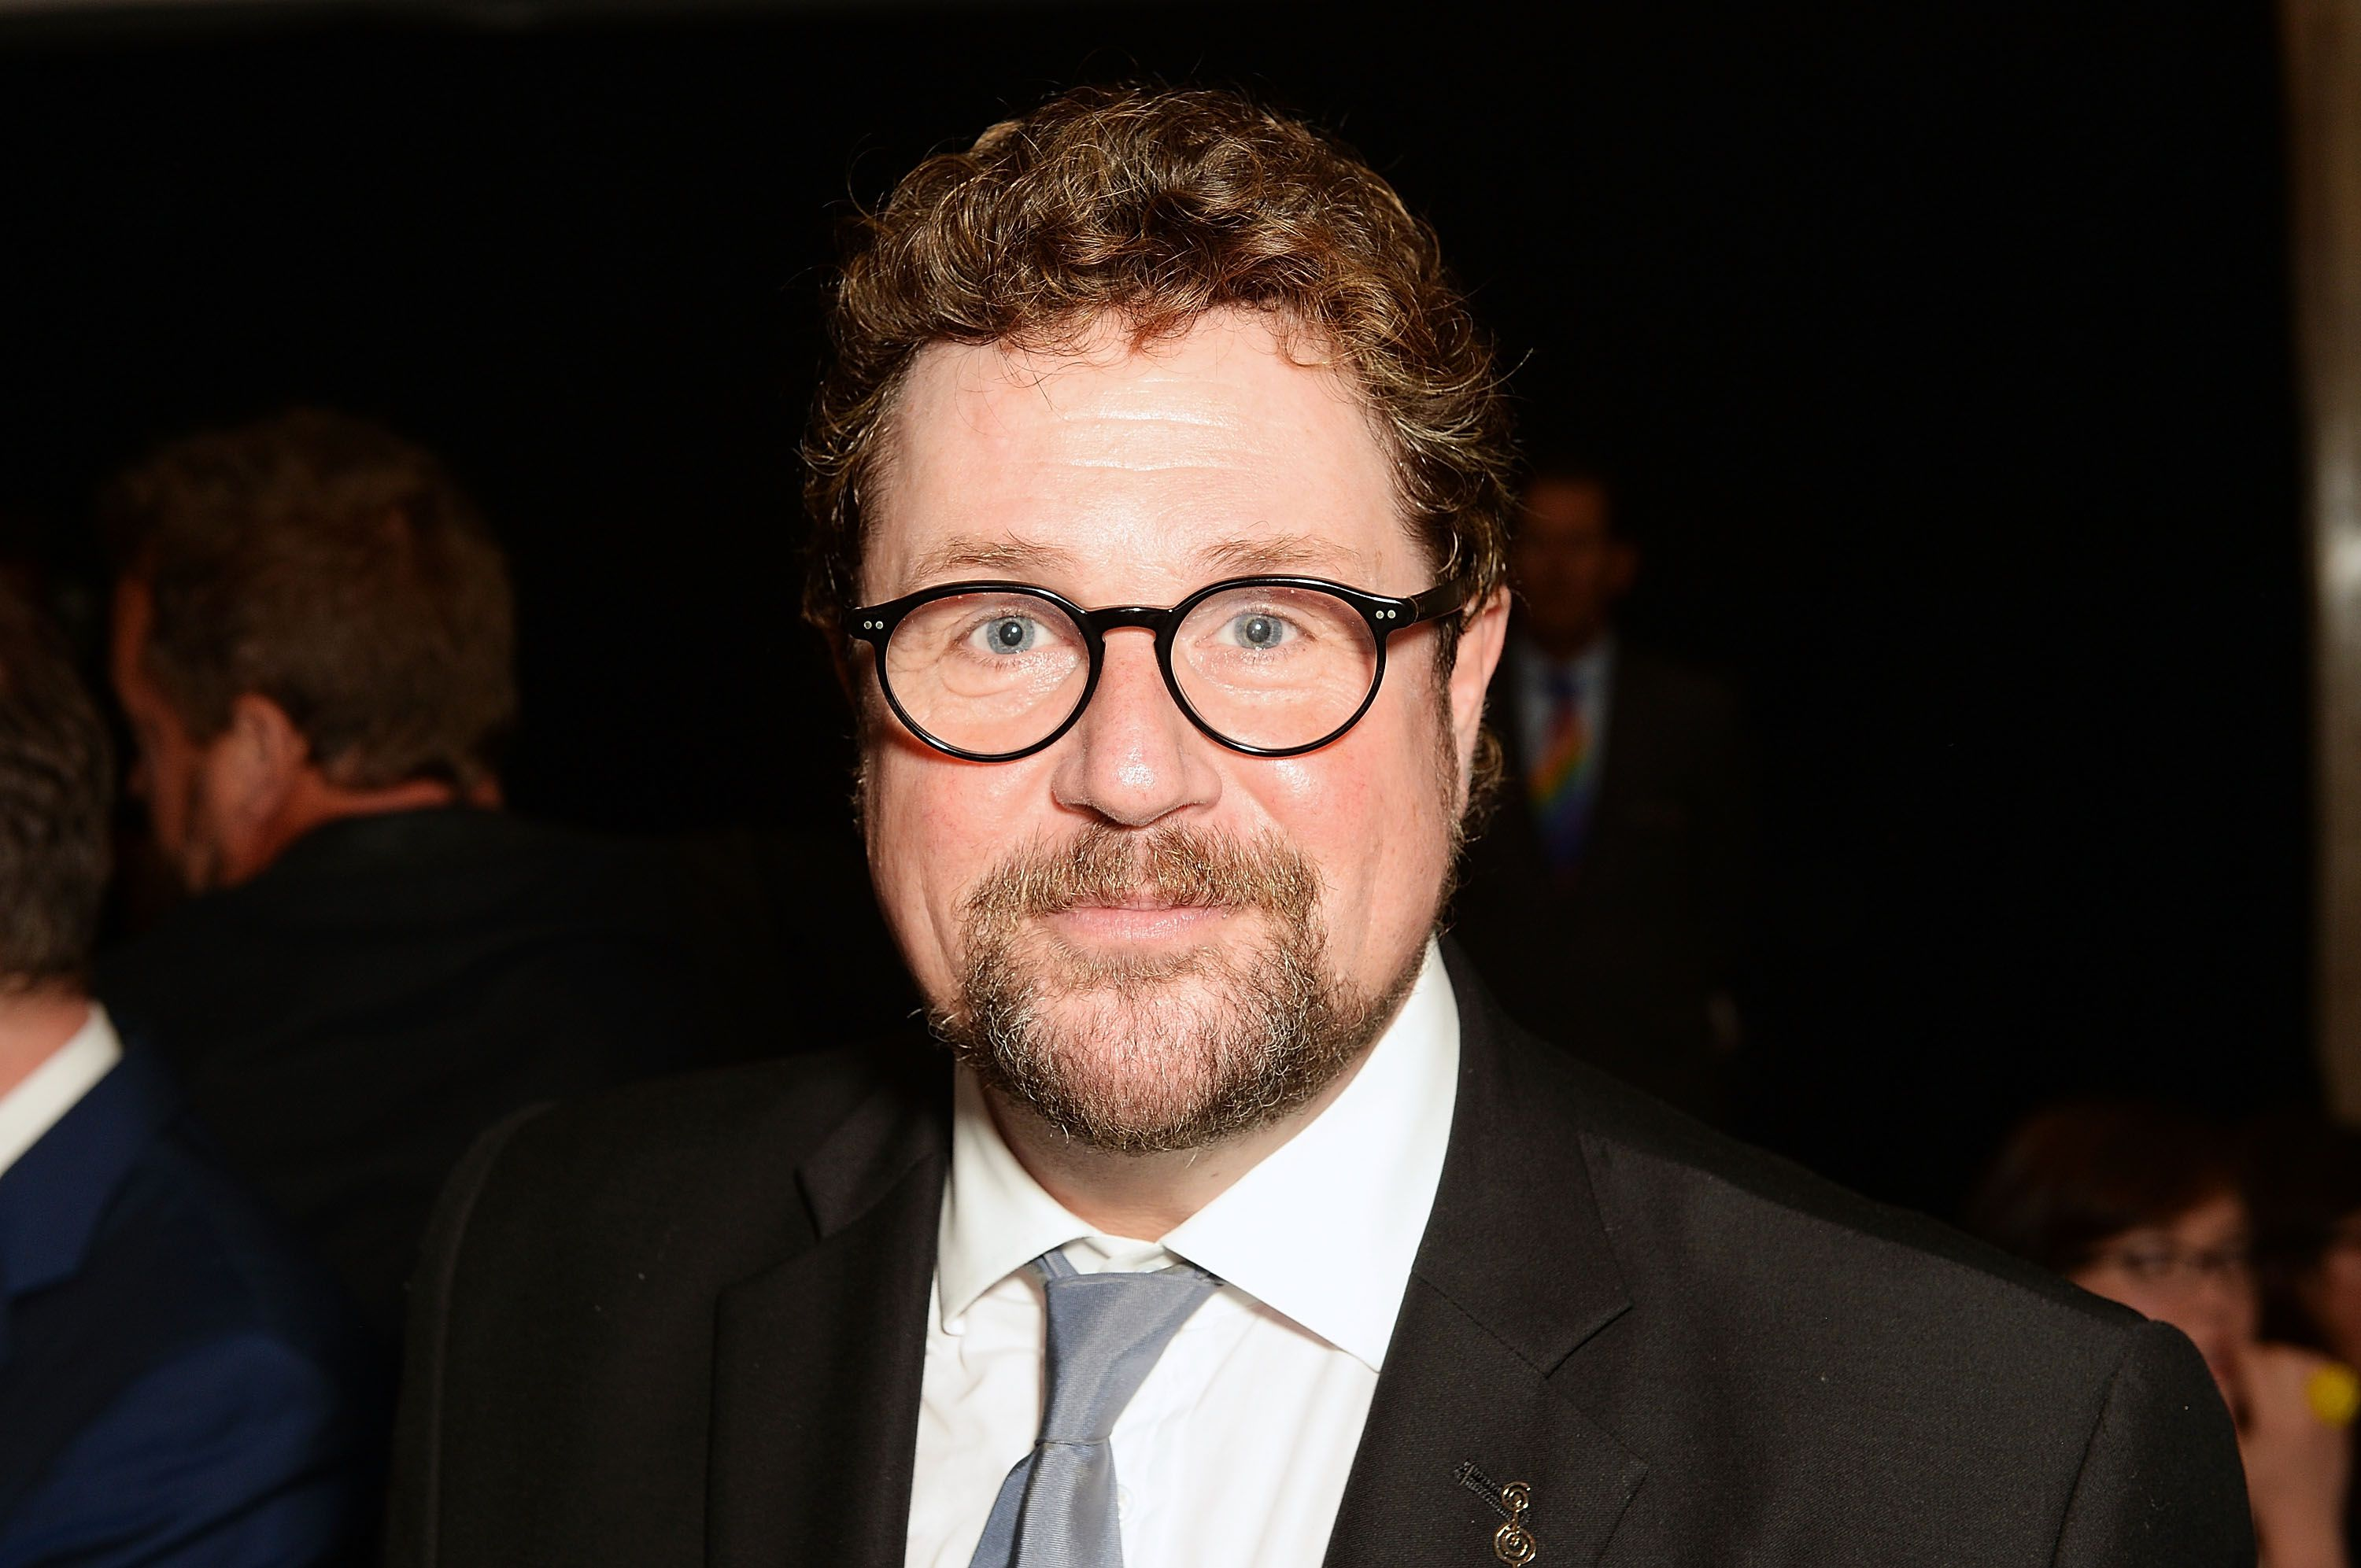 Michael Ball's 'most offensive' word during Red Nose Day segment investigated by Ofcom